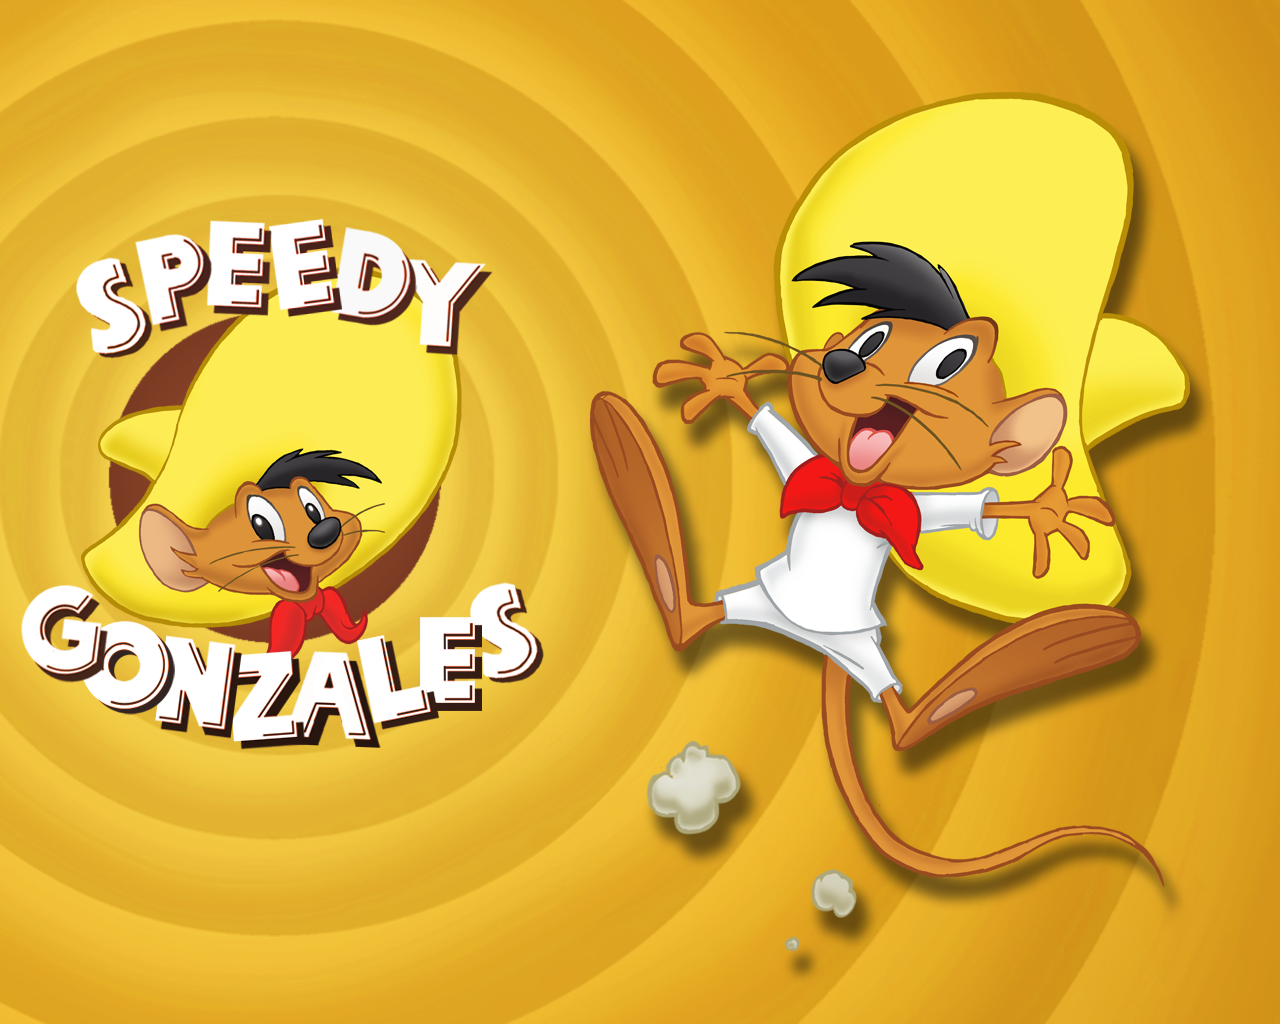 speedy gonzales gay, speedy gonzales, the onion homosexuals